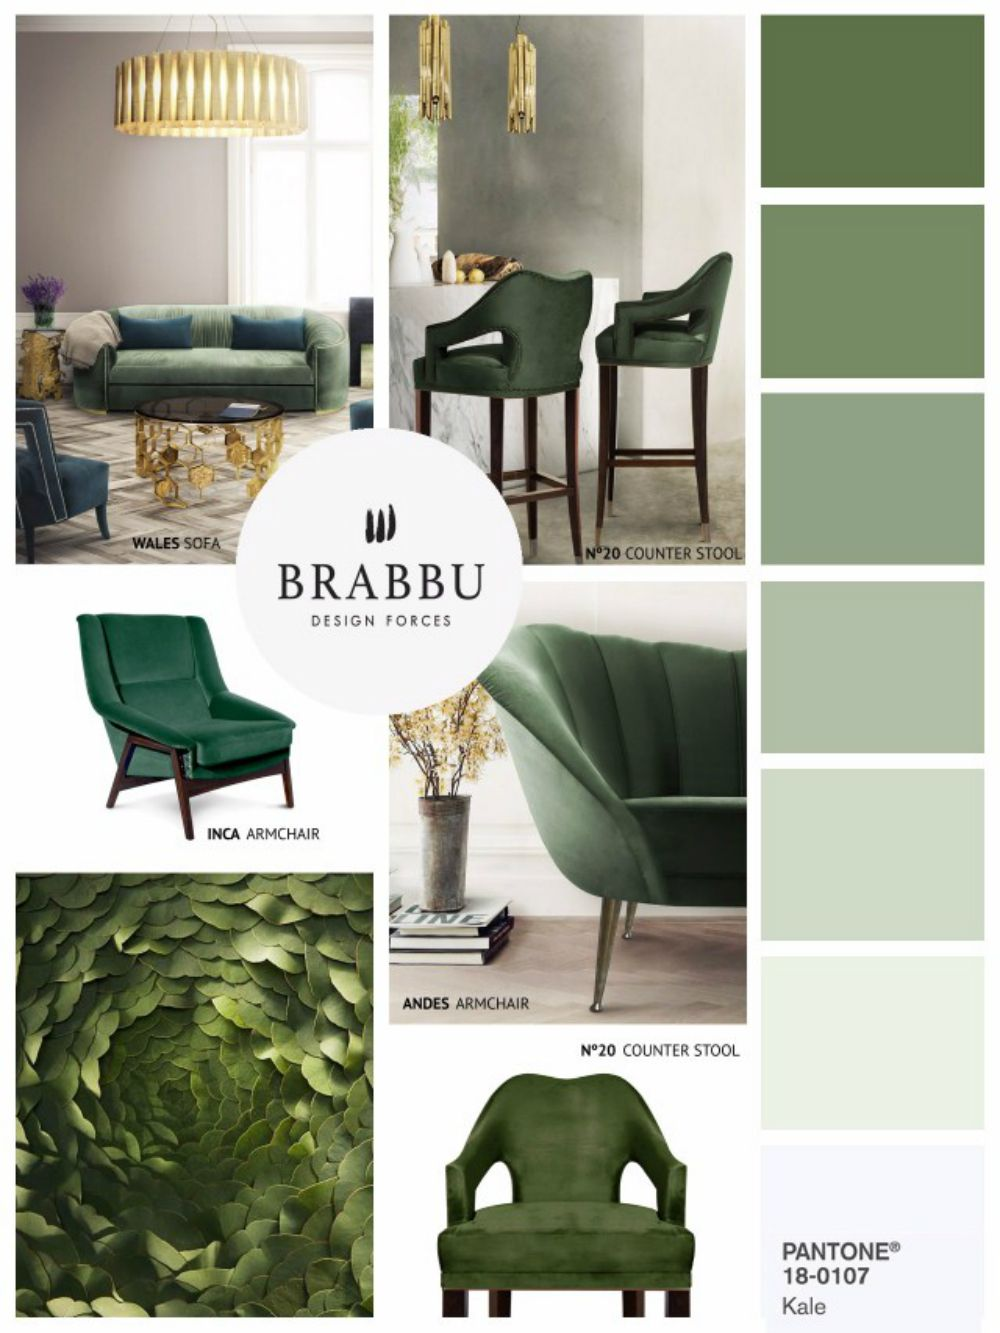 Home Decor Color trends for Spring 2017 According to Pantone | Kale ...